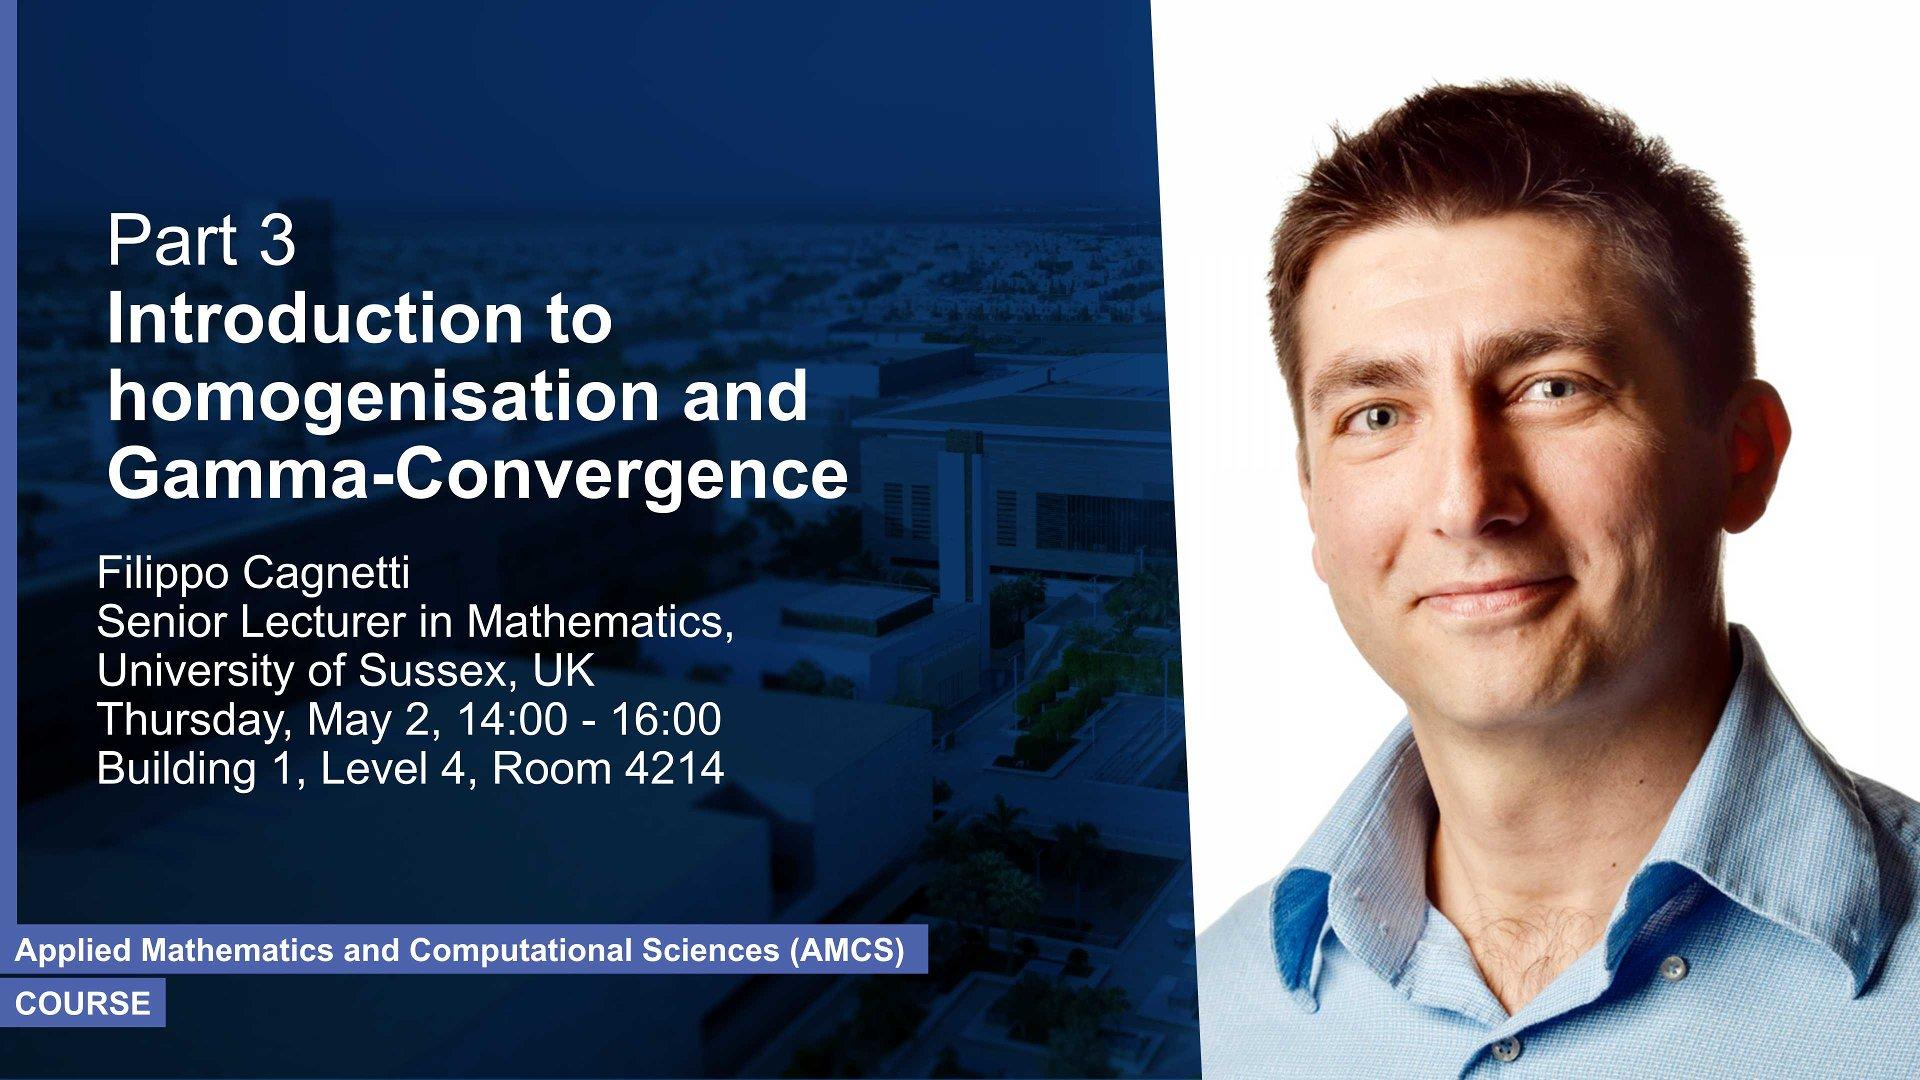 KAUST CEMSE AMCS Course Part 3 Filippo Cagnetti